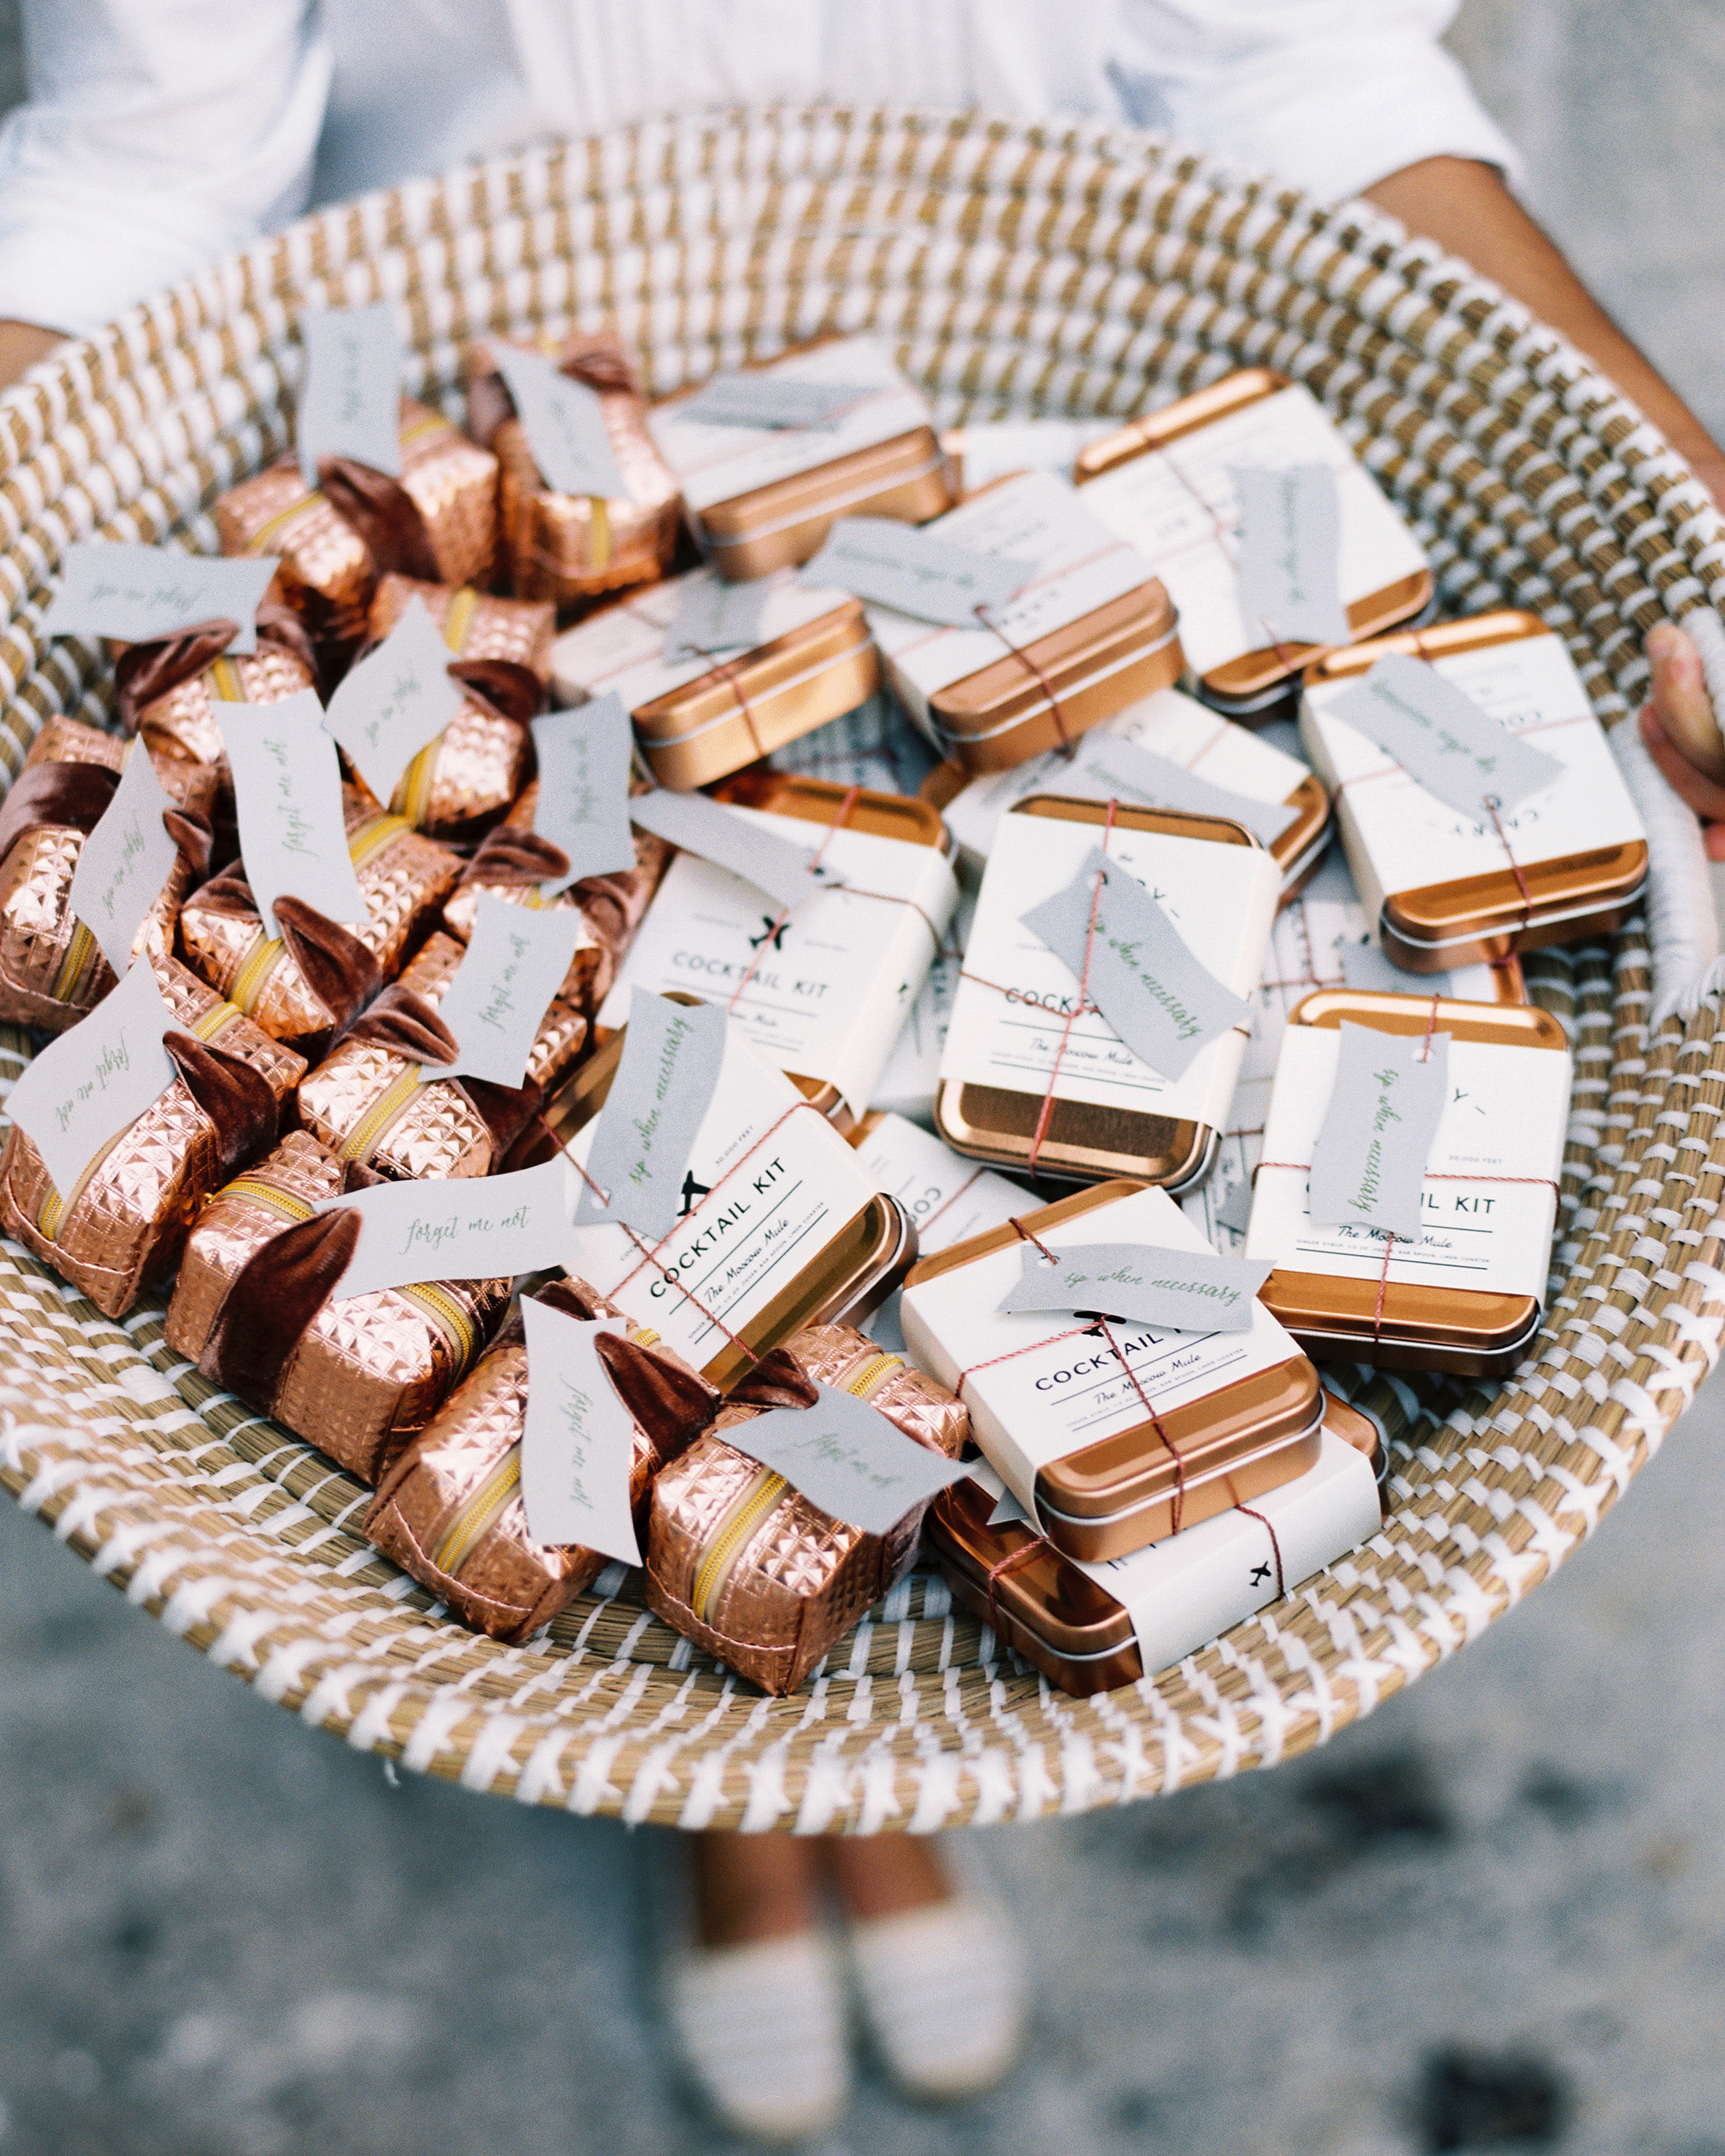 Ideas For A Fun Wedding: 50 Creative Wedding Favors That Will Delight Your Guests